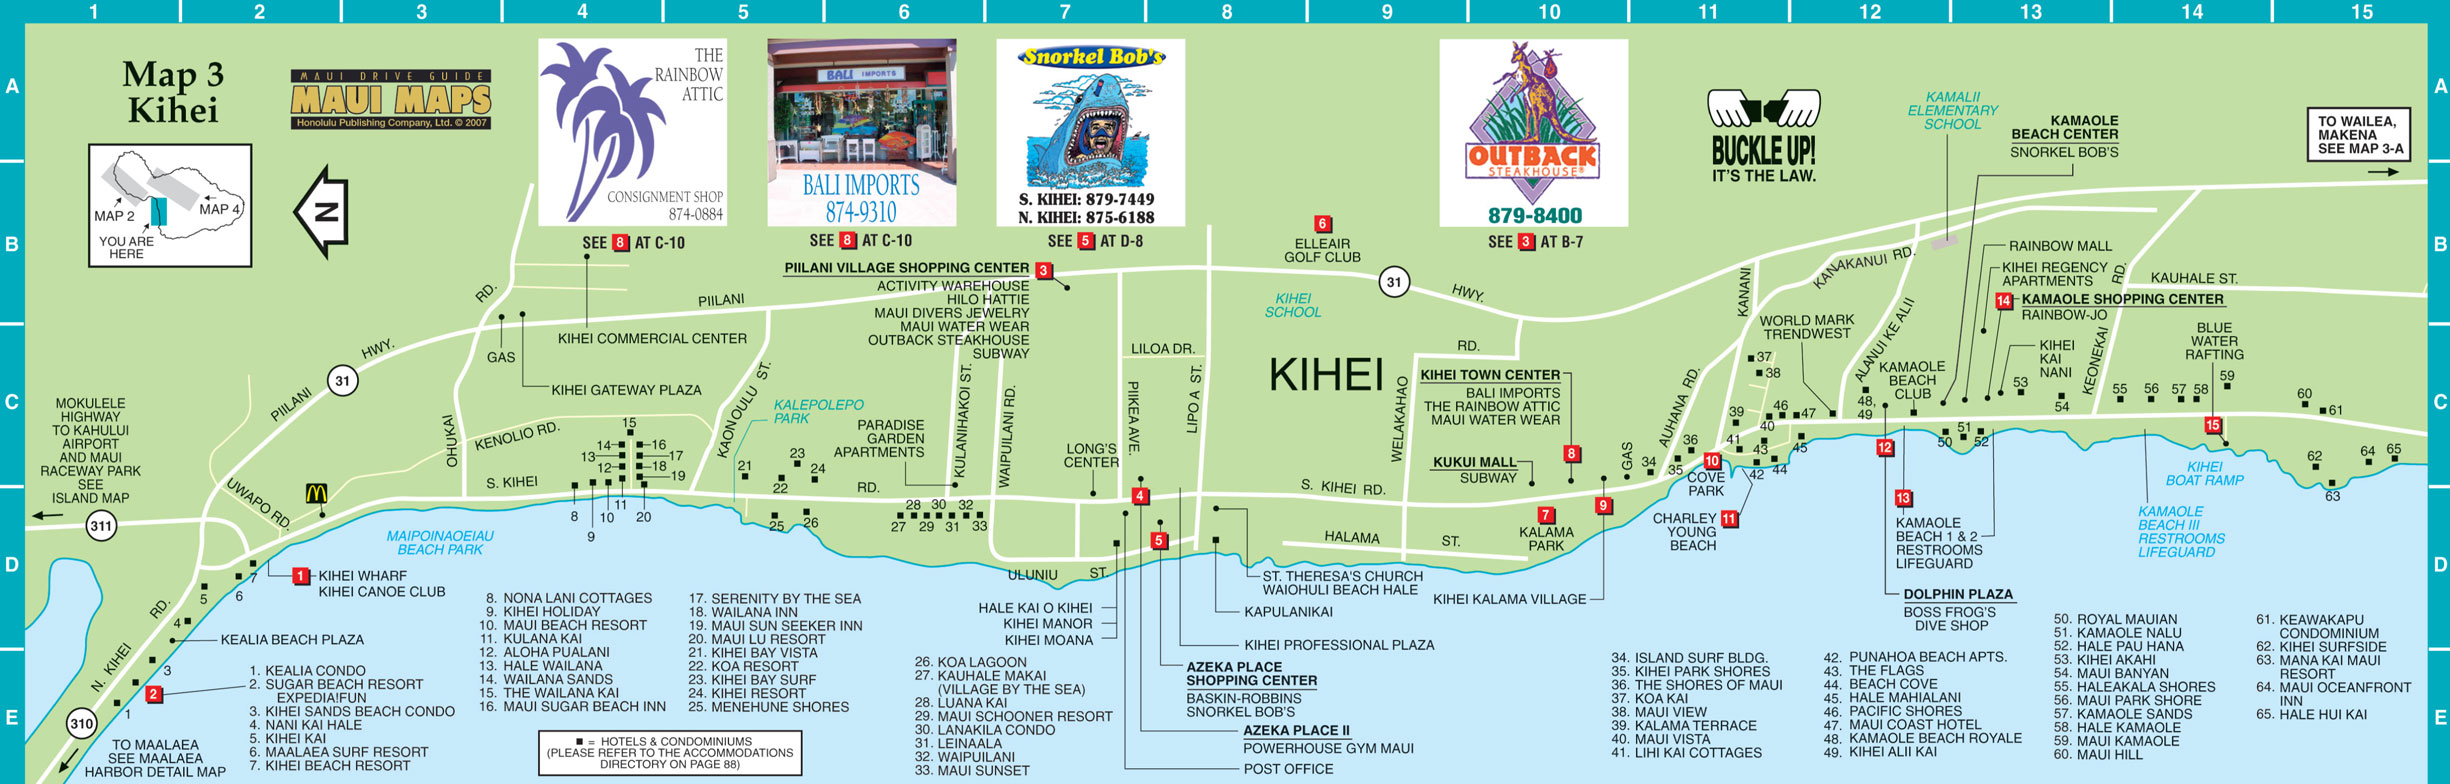 Kihei Map Kihei Maui HI US mappery – Tourist Map Of Maui